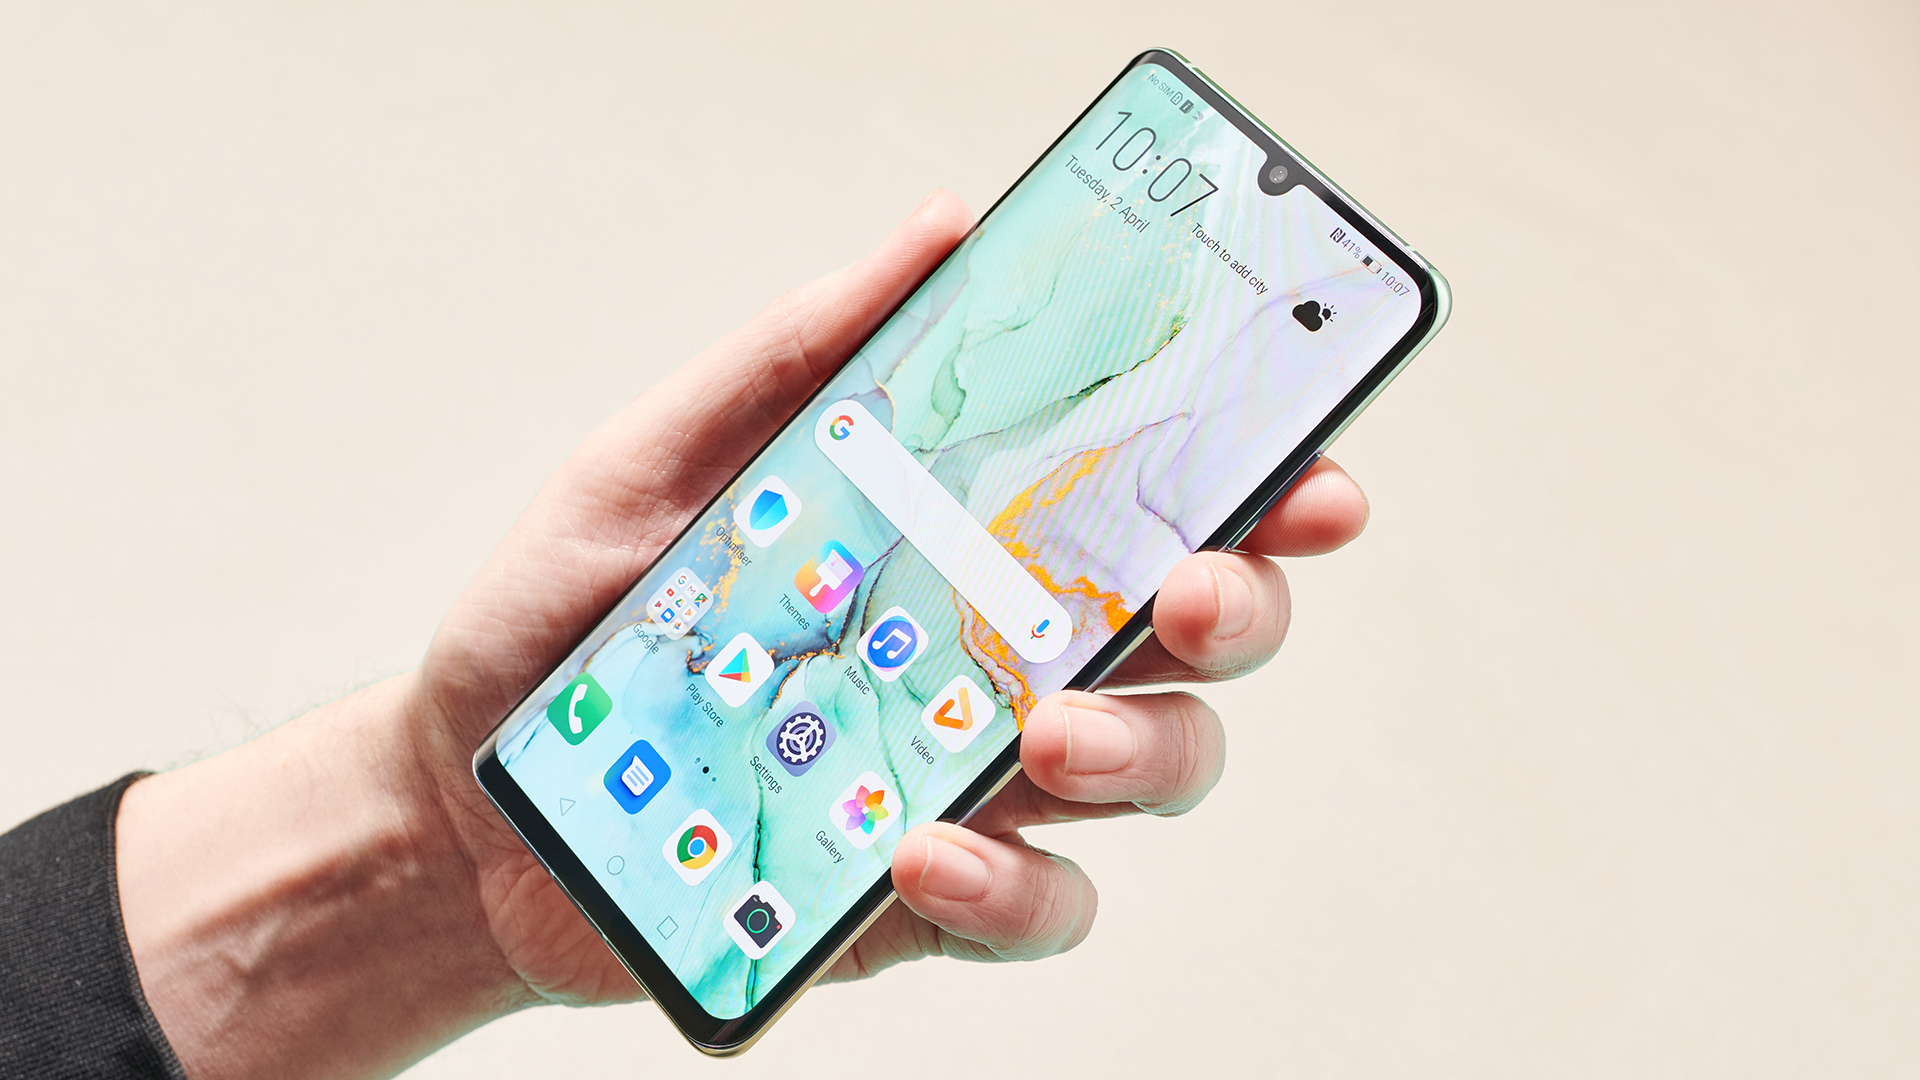 The best Huawei phones of 2019: find your perfect Huawei